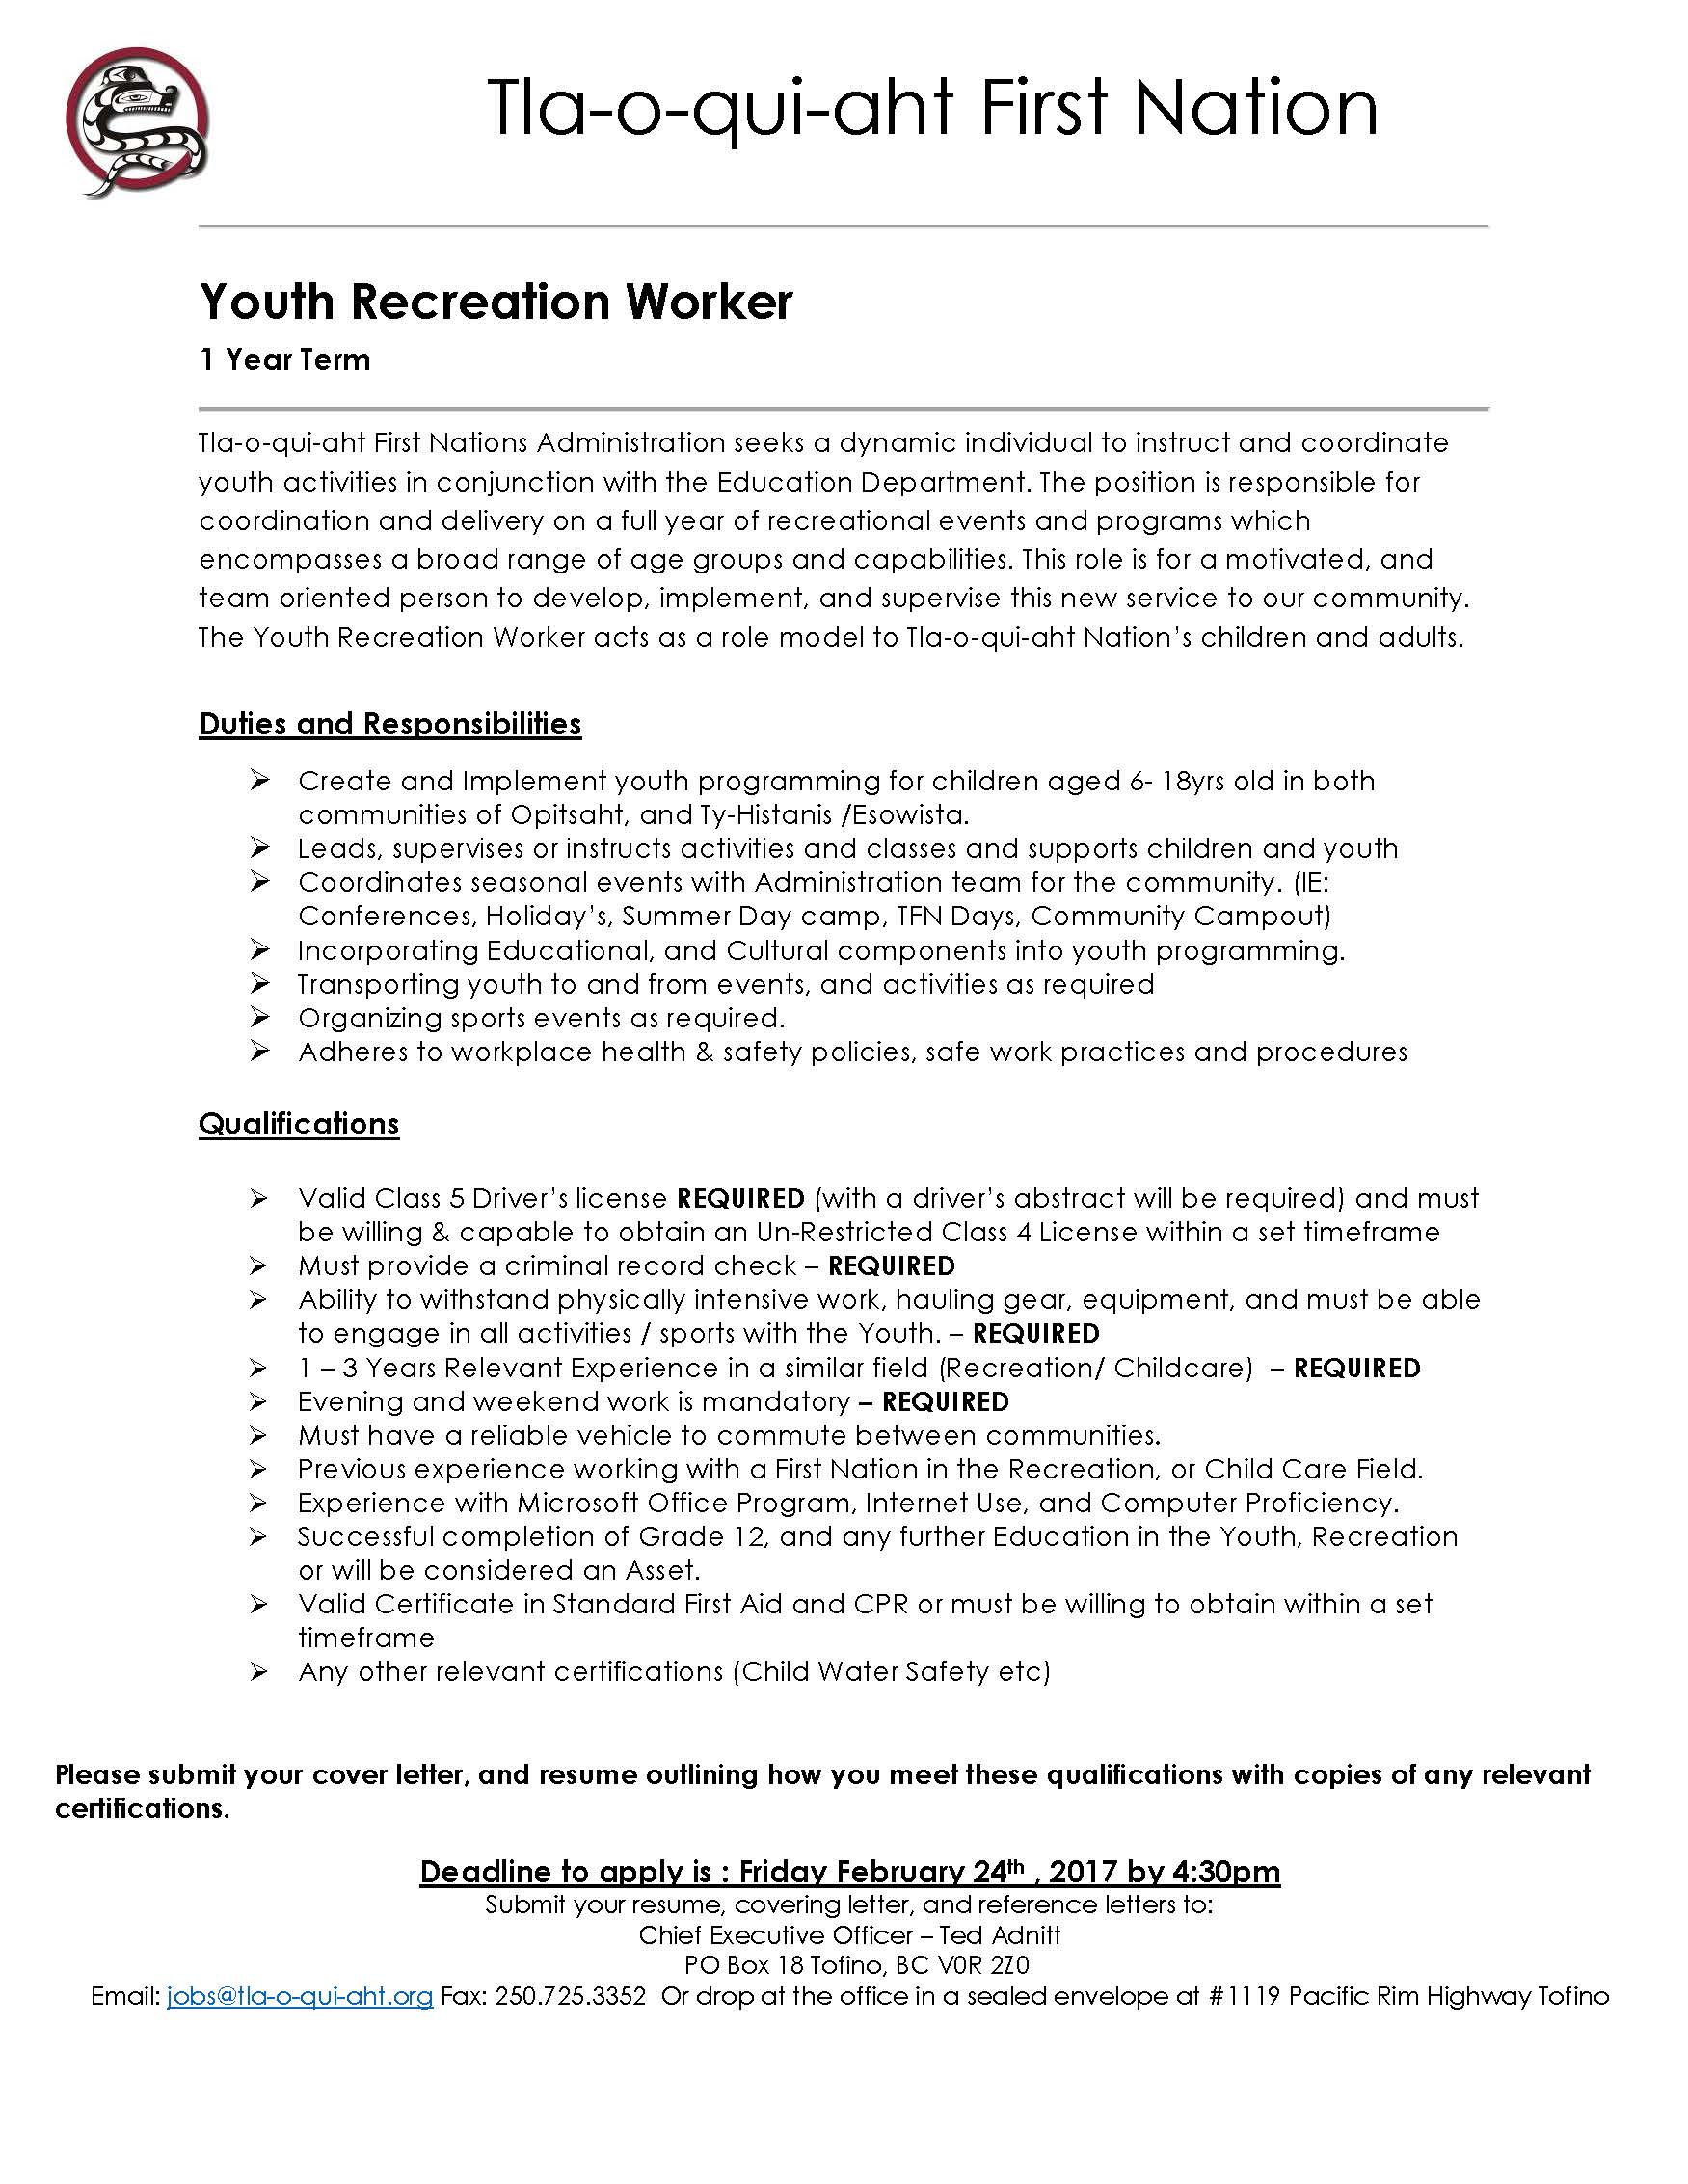 landscape worker cover letter microhistory essay personal banker tfn youth worker job posting landscape worker cover letterhtml recreation worker sample